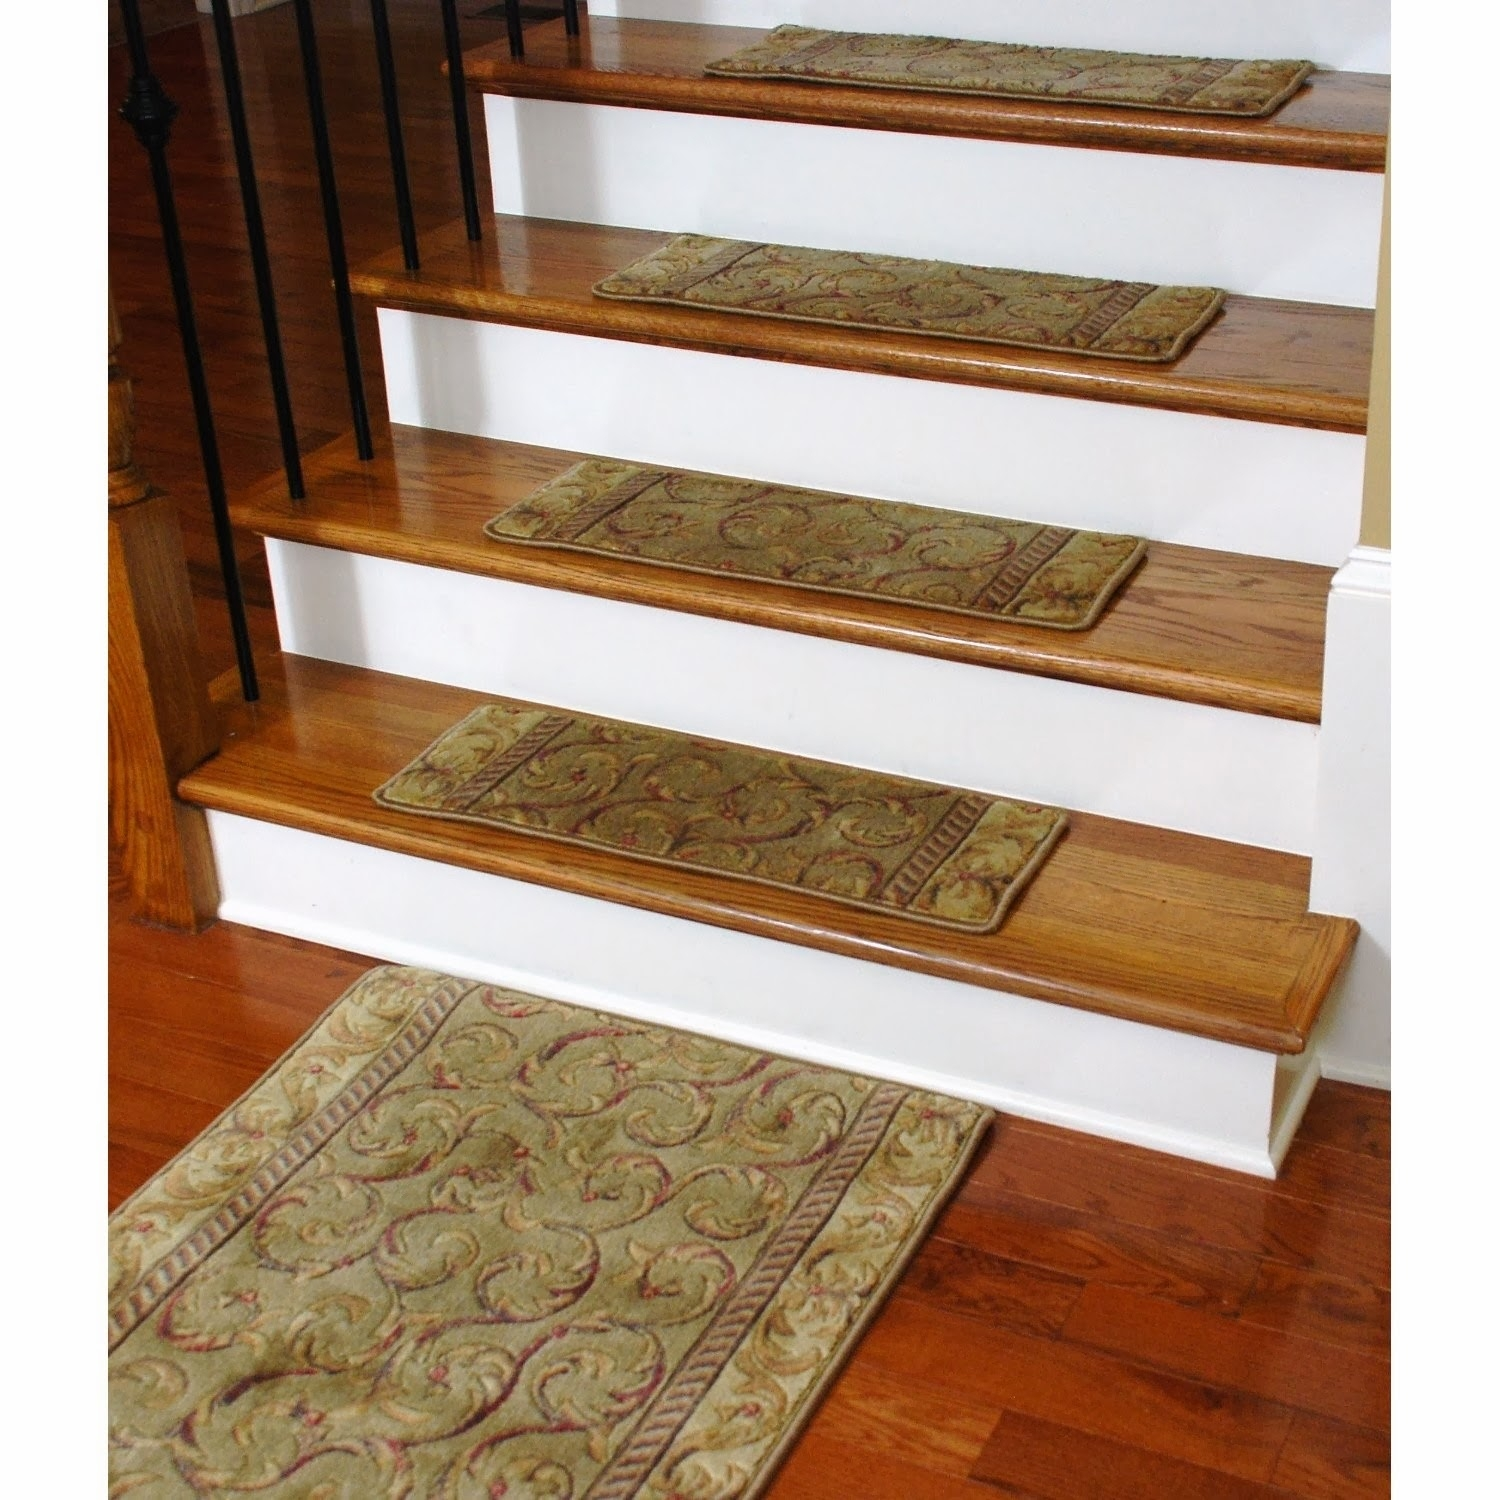 54 Stair Carpet Protectors Protector Carpets Inspirations Vinyl Within Stair Tread Carpet Protectors (Image 2 of 15)